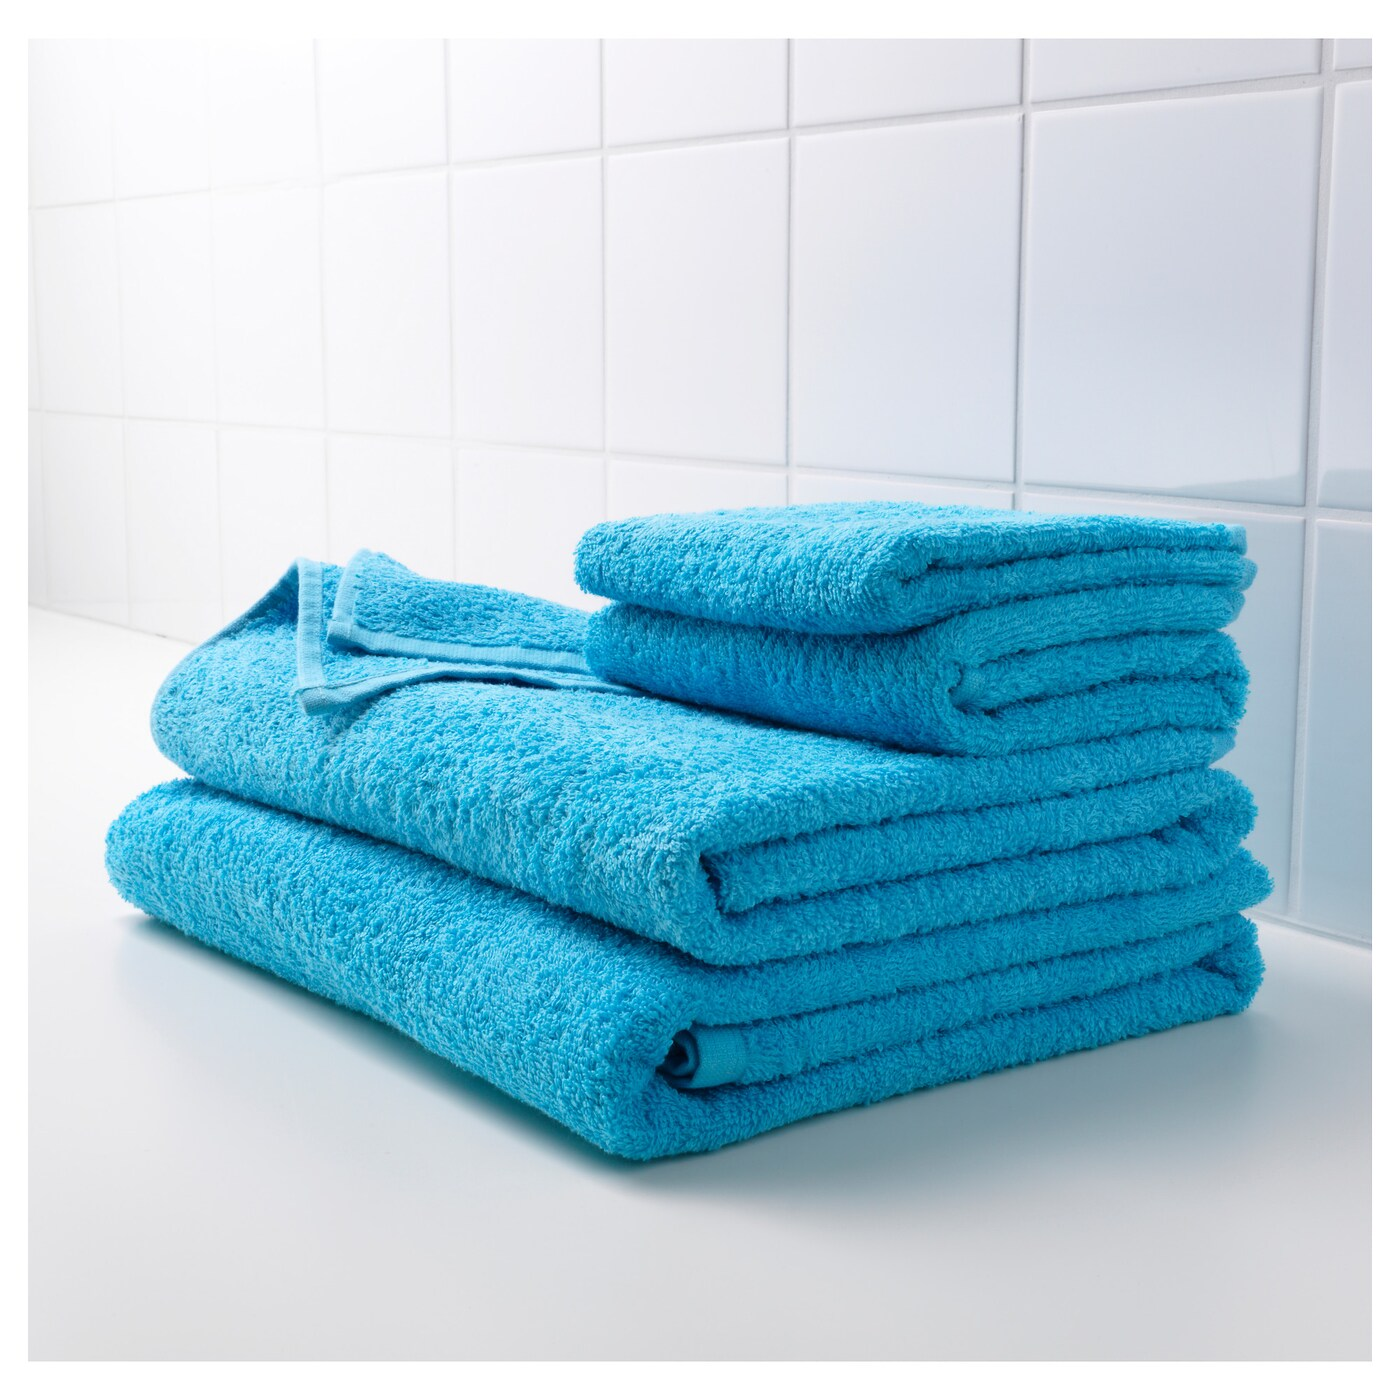 IKEA HÄREN washcloth The long, fine fibres of combed cotton create a soft and durable towel.